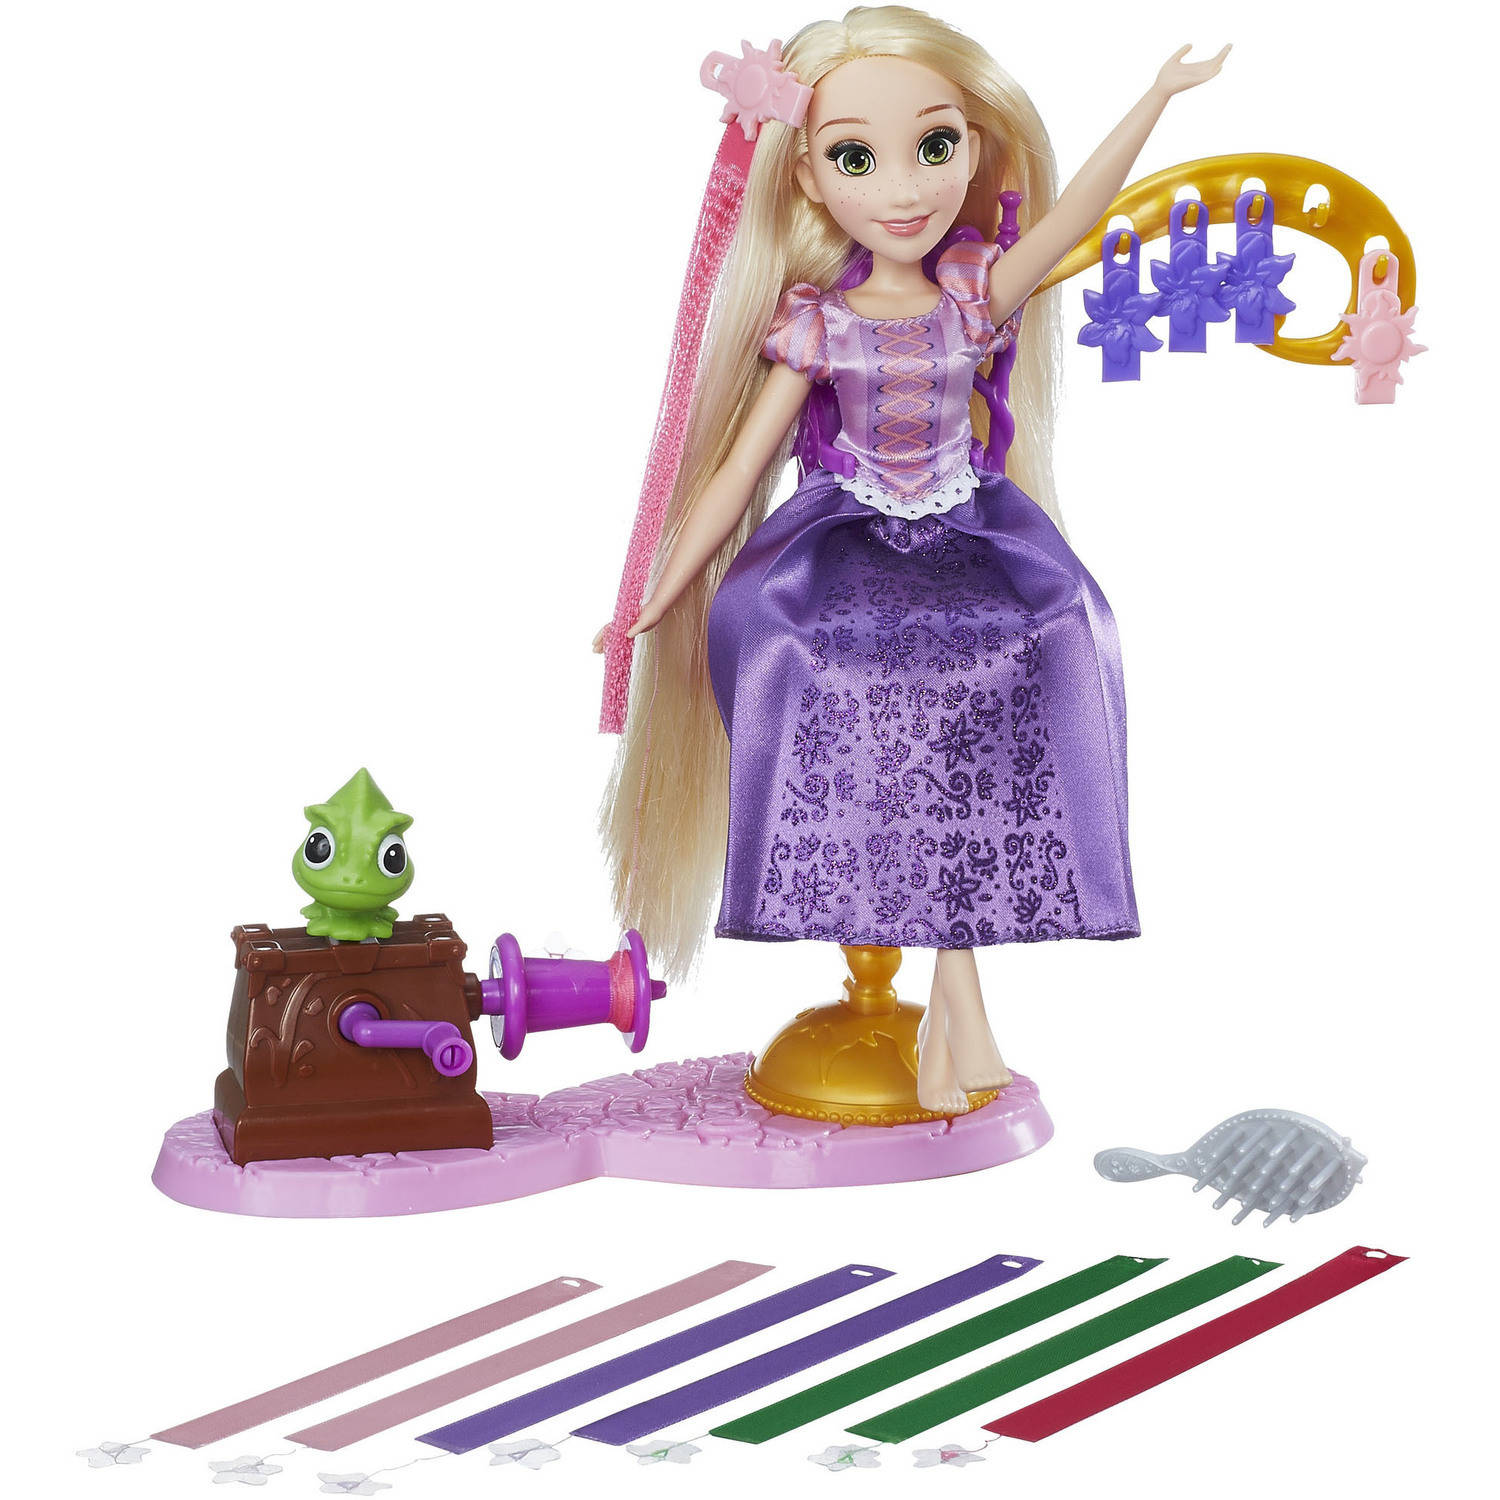 Disney Princess Rapunzel's Royal Ribbon Salon by Hasbro